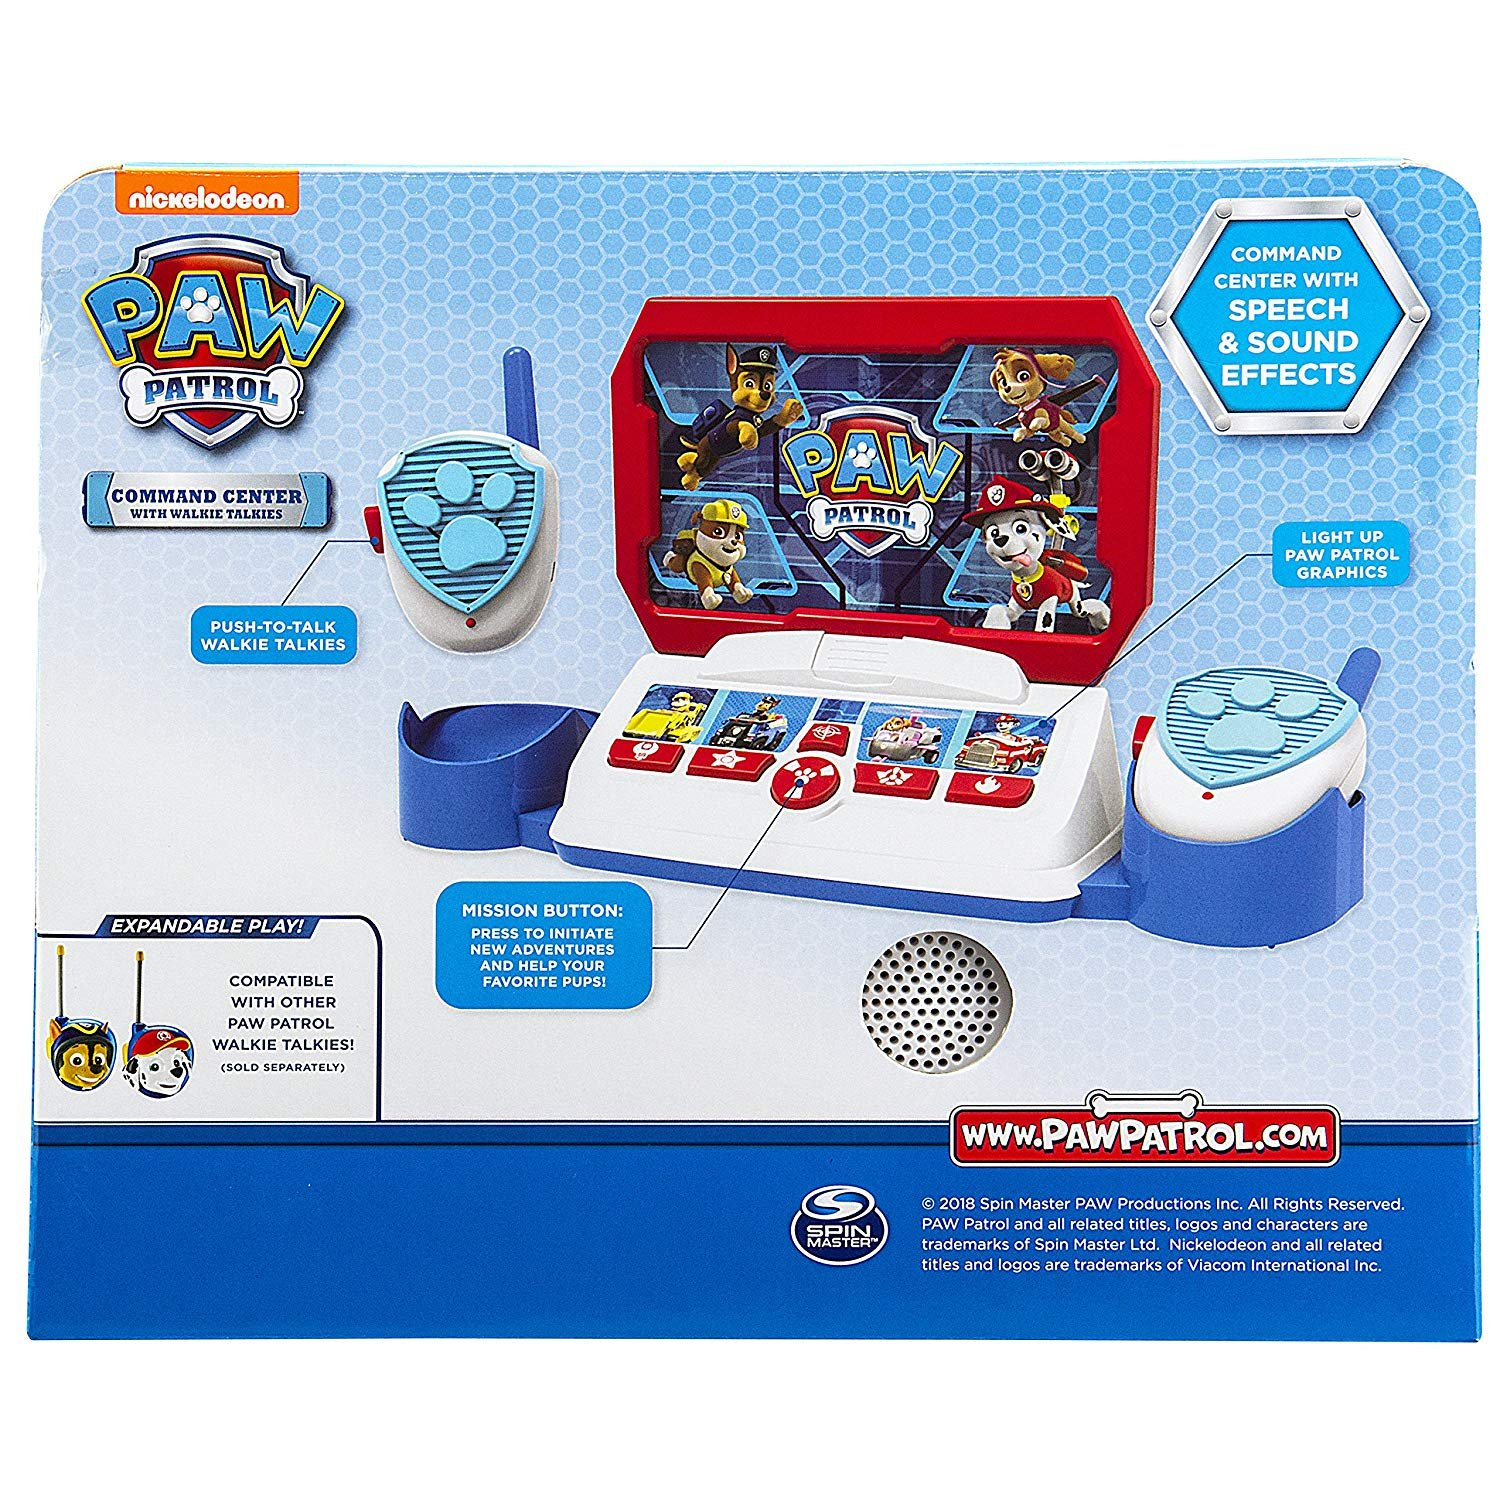 Paw Patrol Command Center with Kid Friendly Walkie Talkies /& Sound Effects